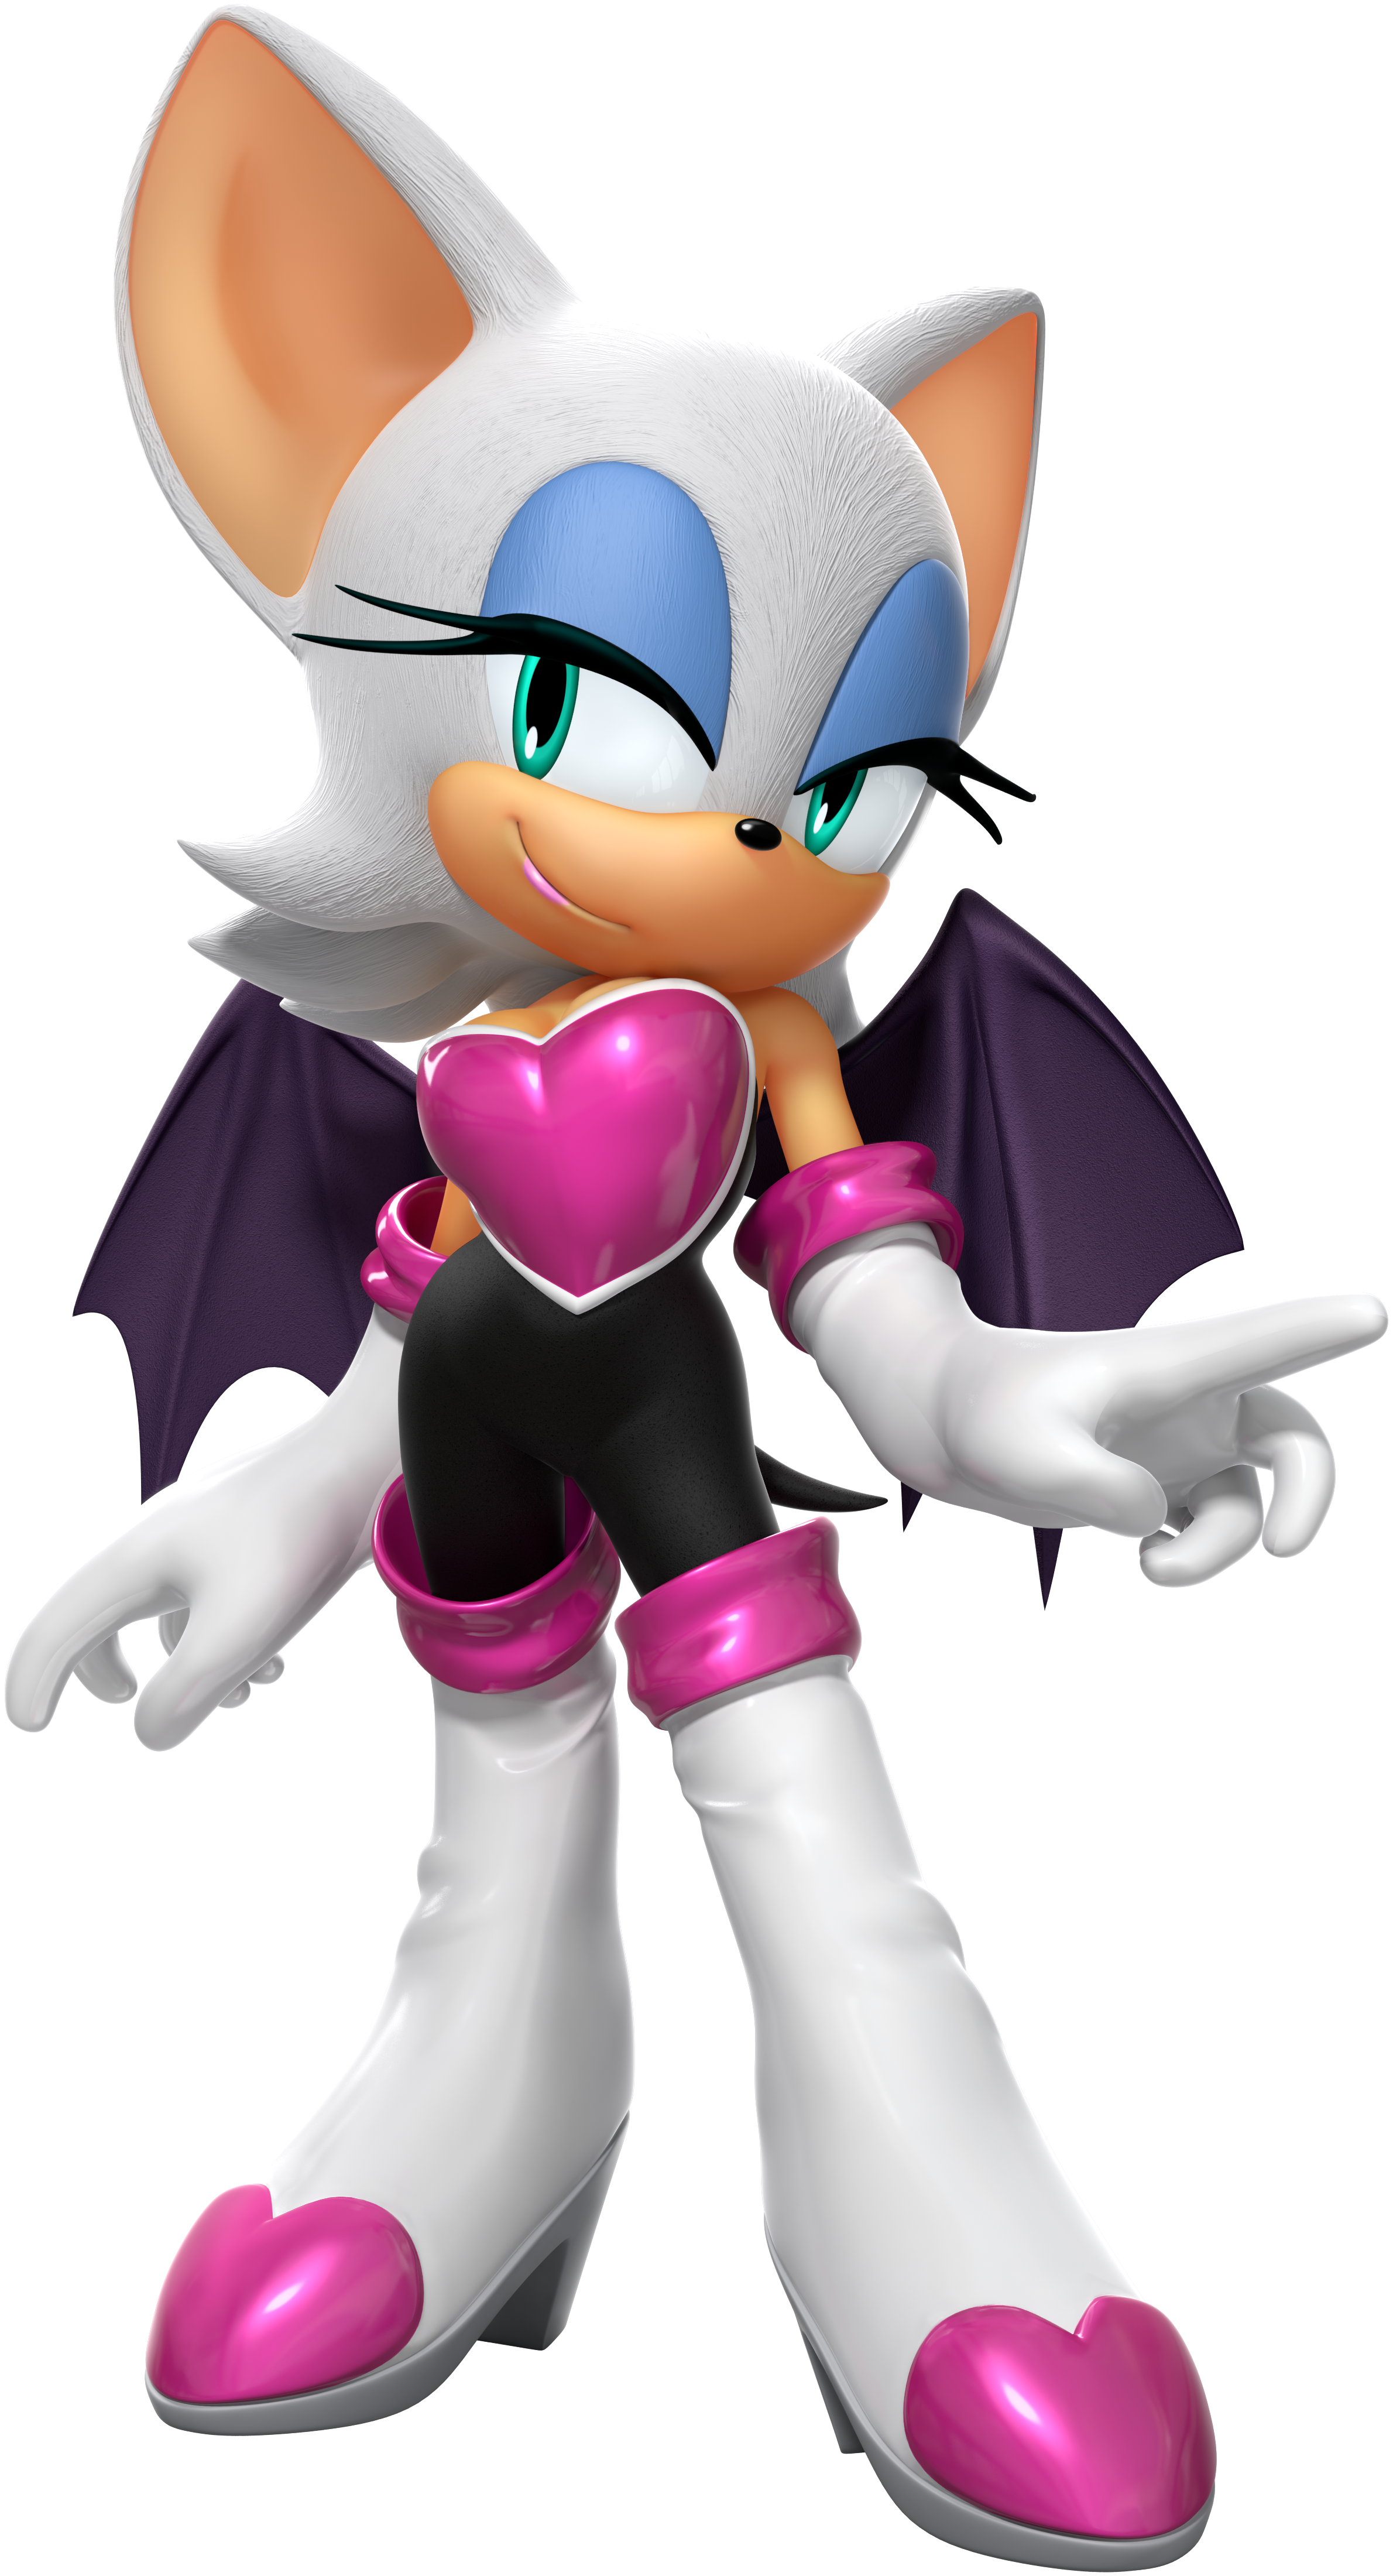 Rouge Cosplay Costume from Sonic The Hedgehog